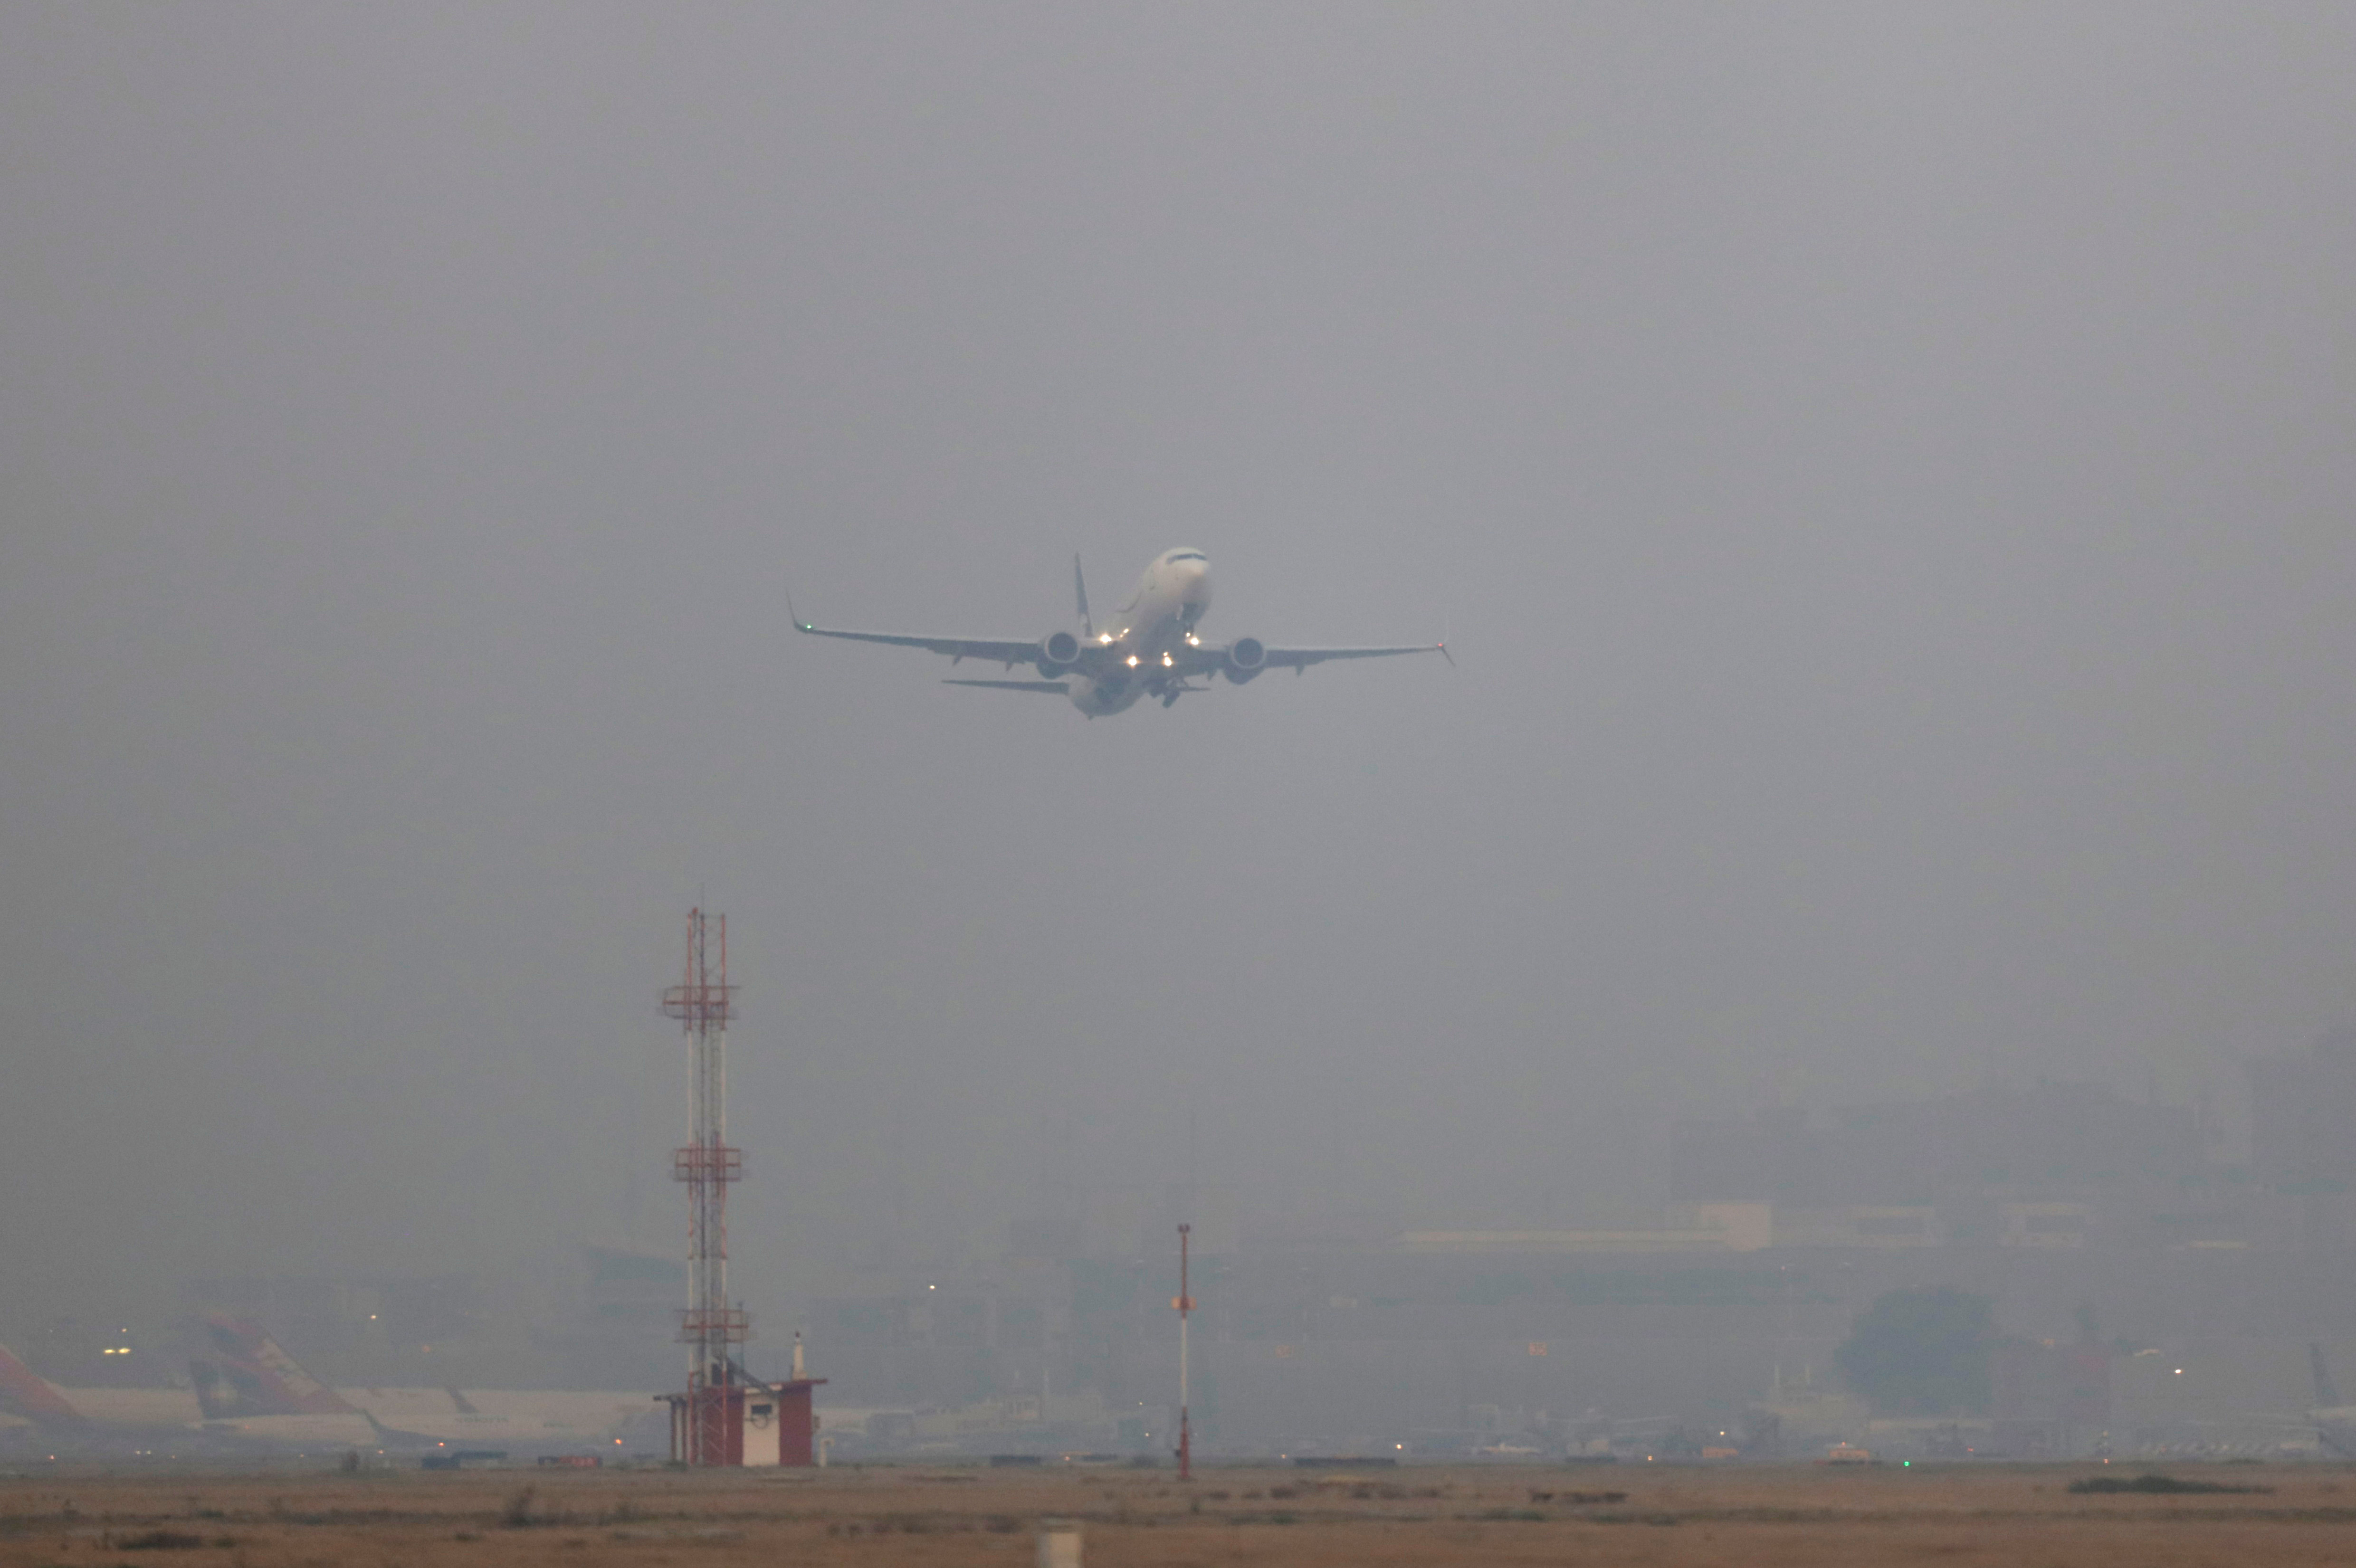 A plane takes off in smog